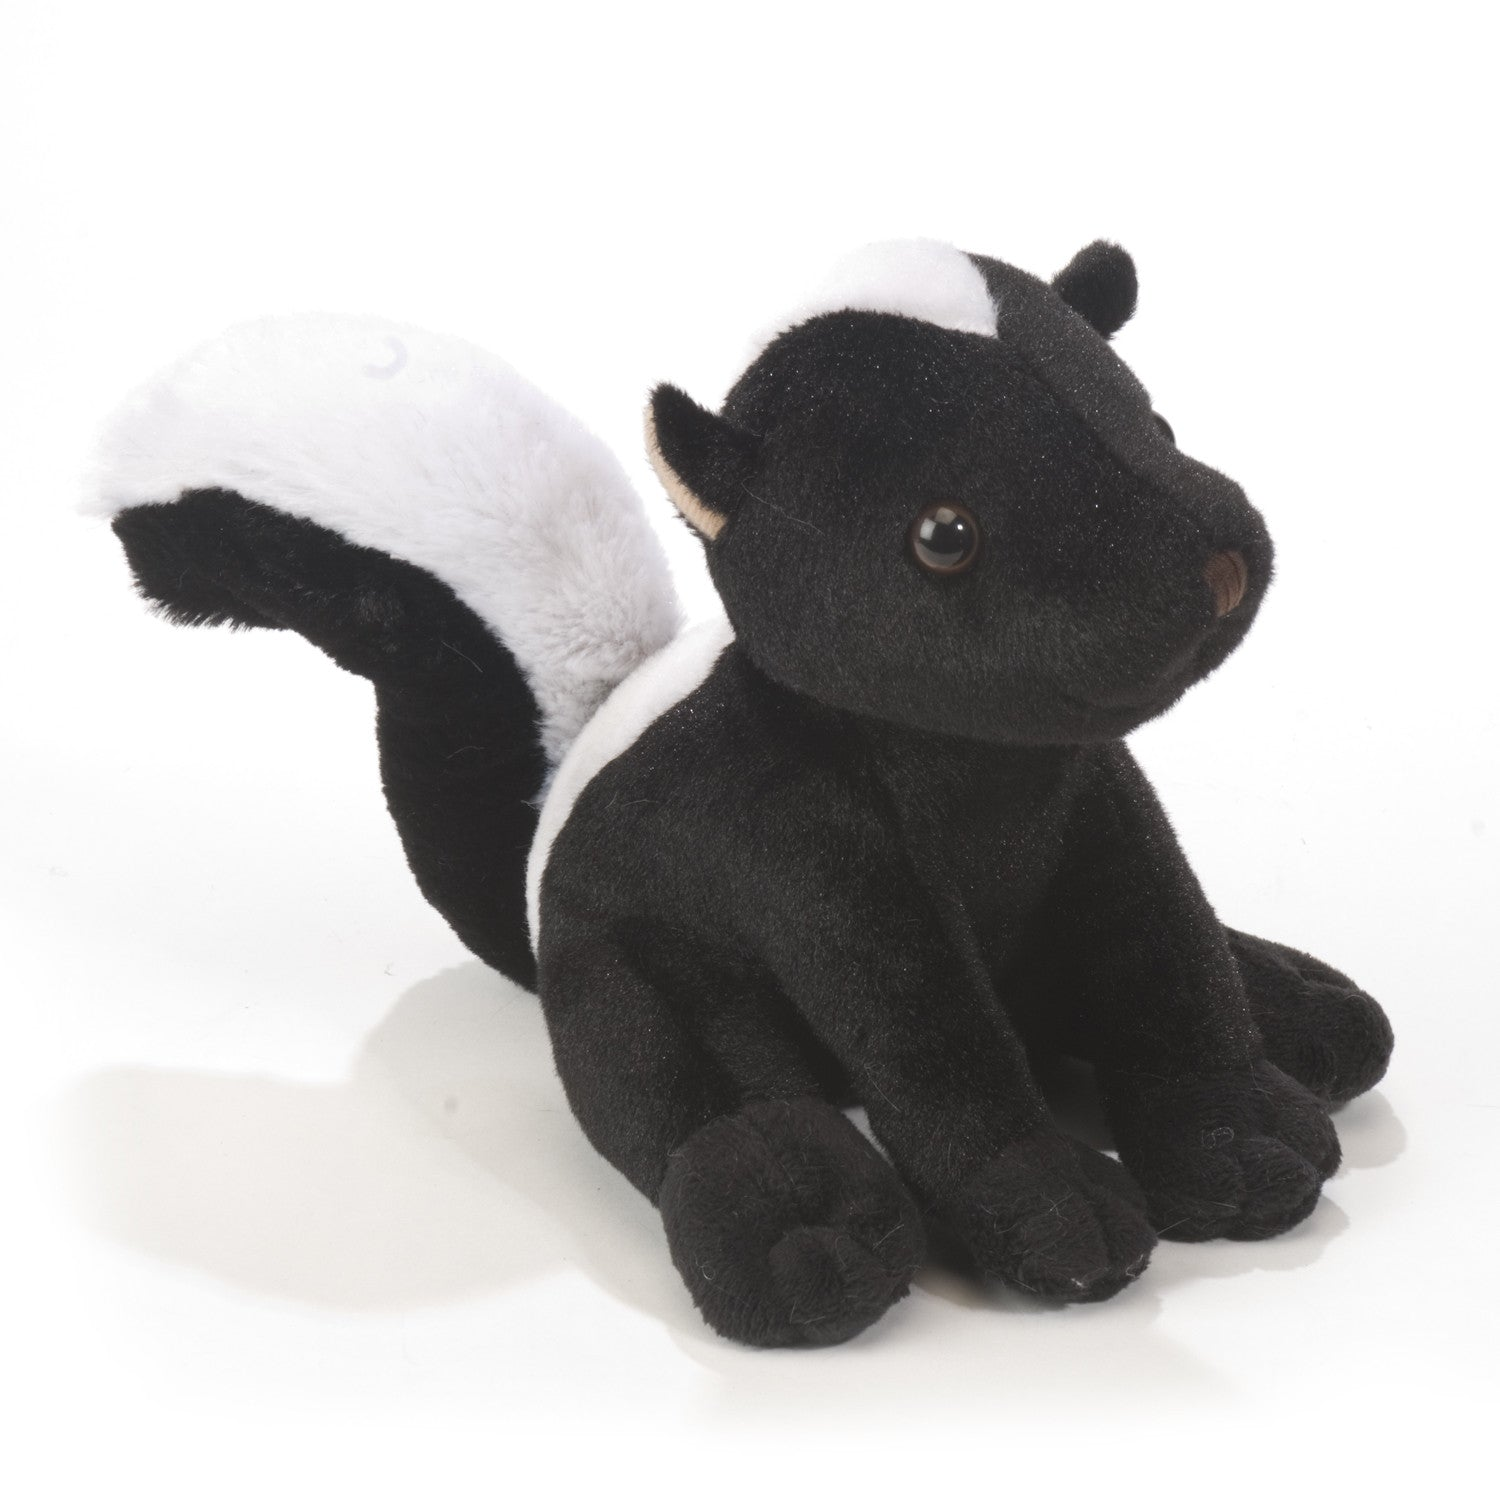 "Plush 6"" Sitting Skunk - Squirrels and More"